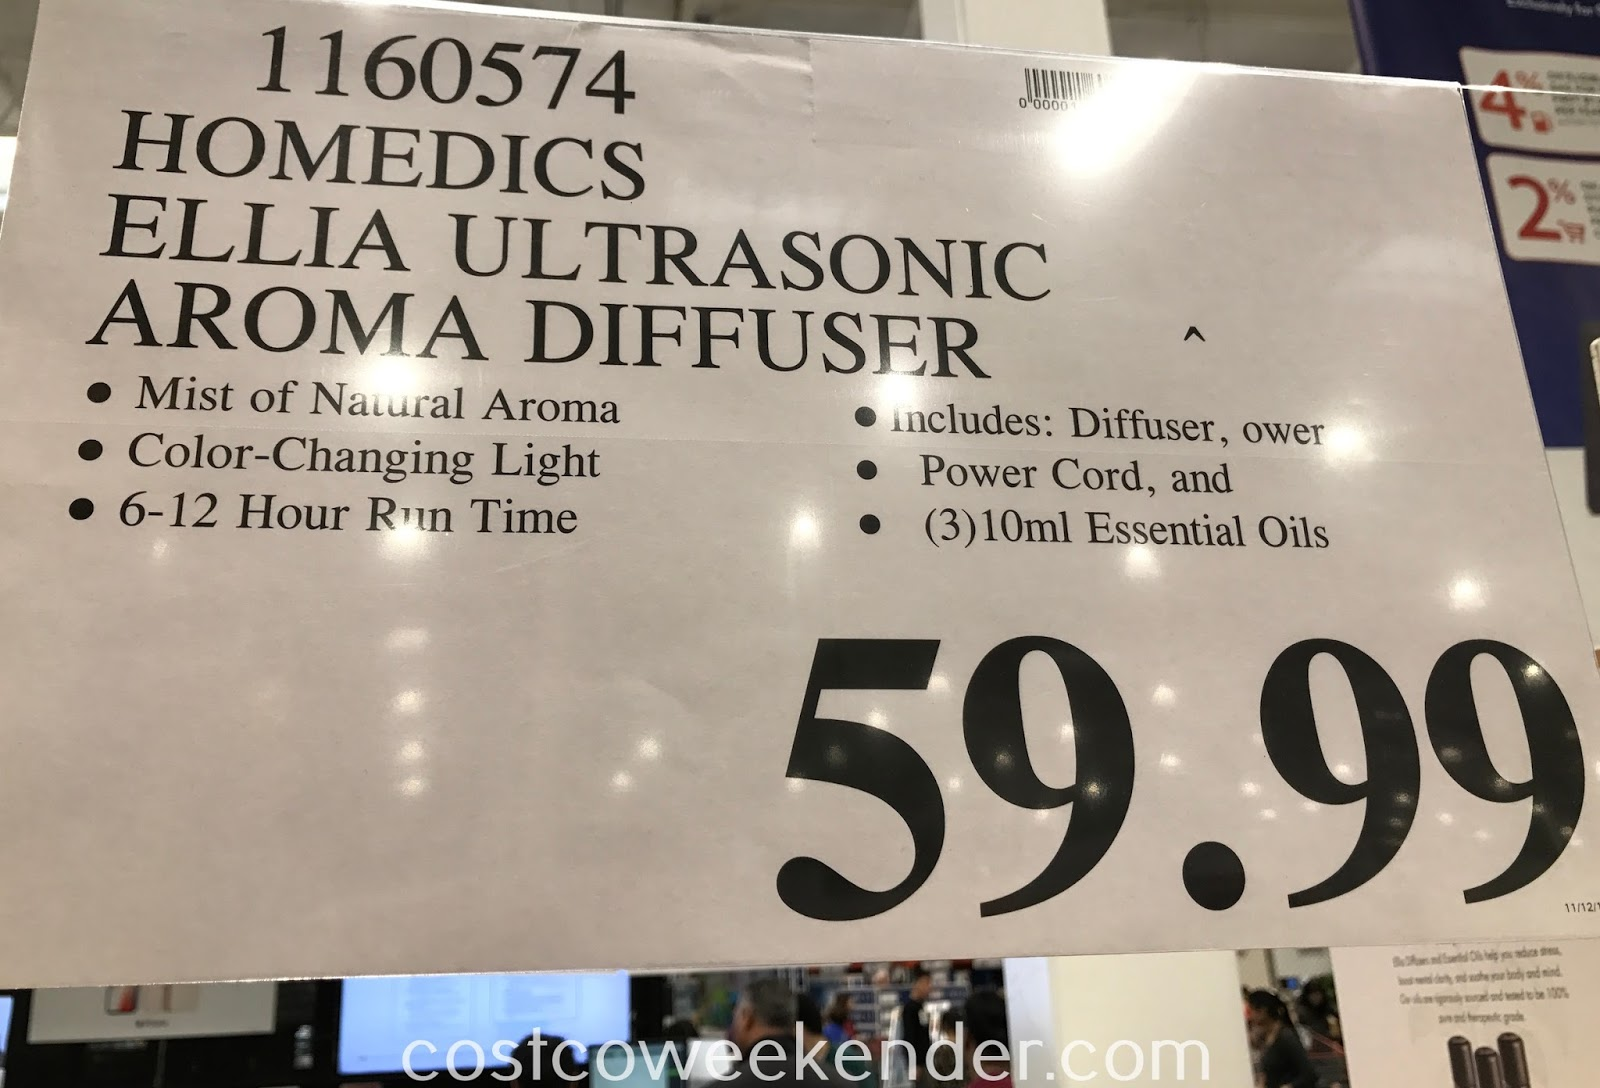 Deal for the HoMedics Ellia Ultrasonic Aroma Diffuser at Costco